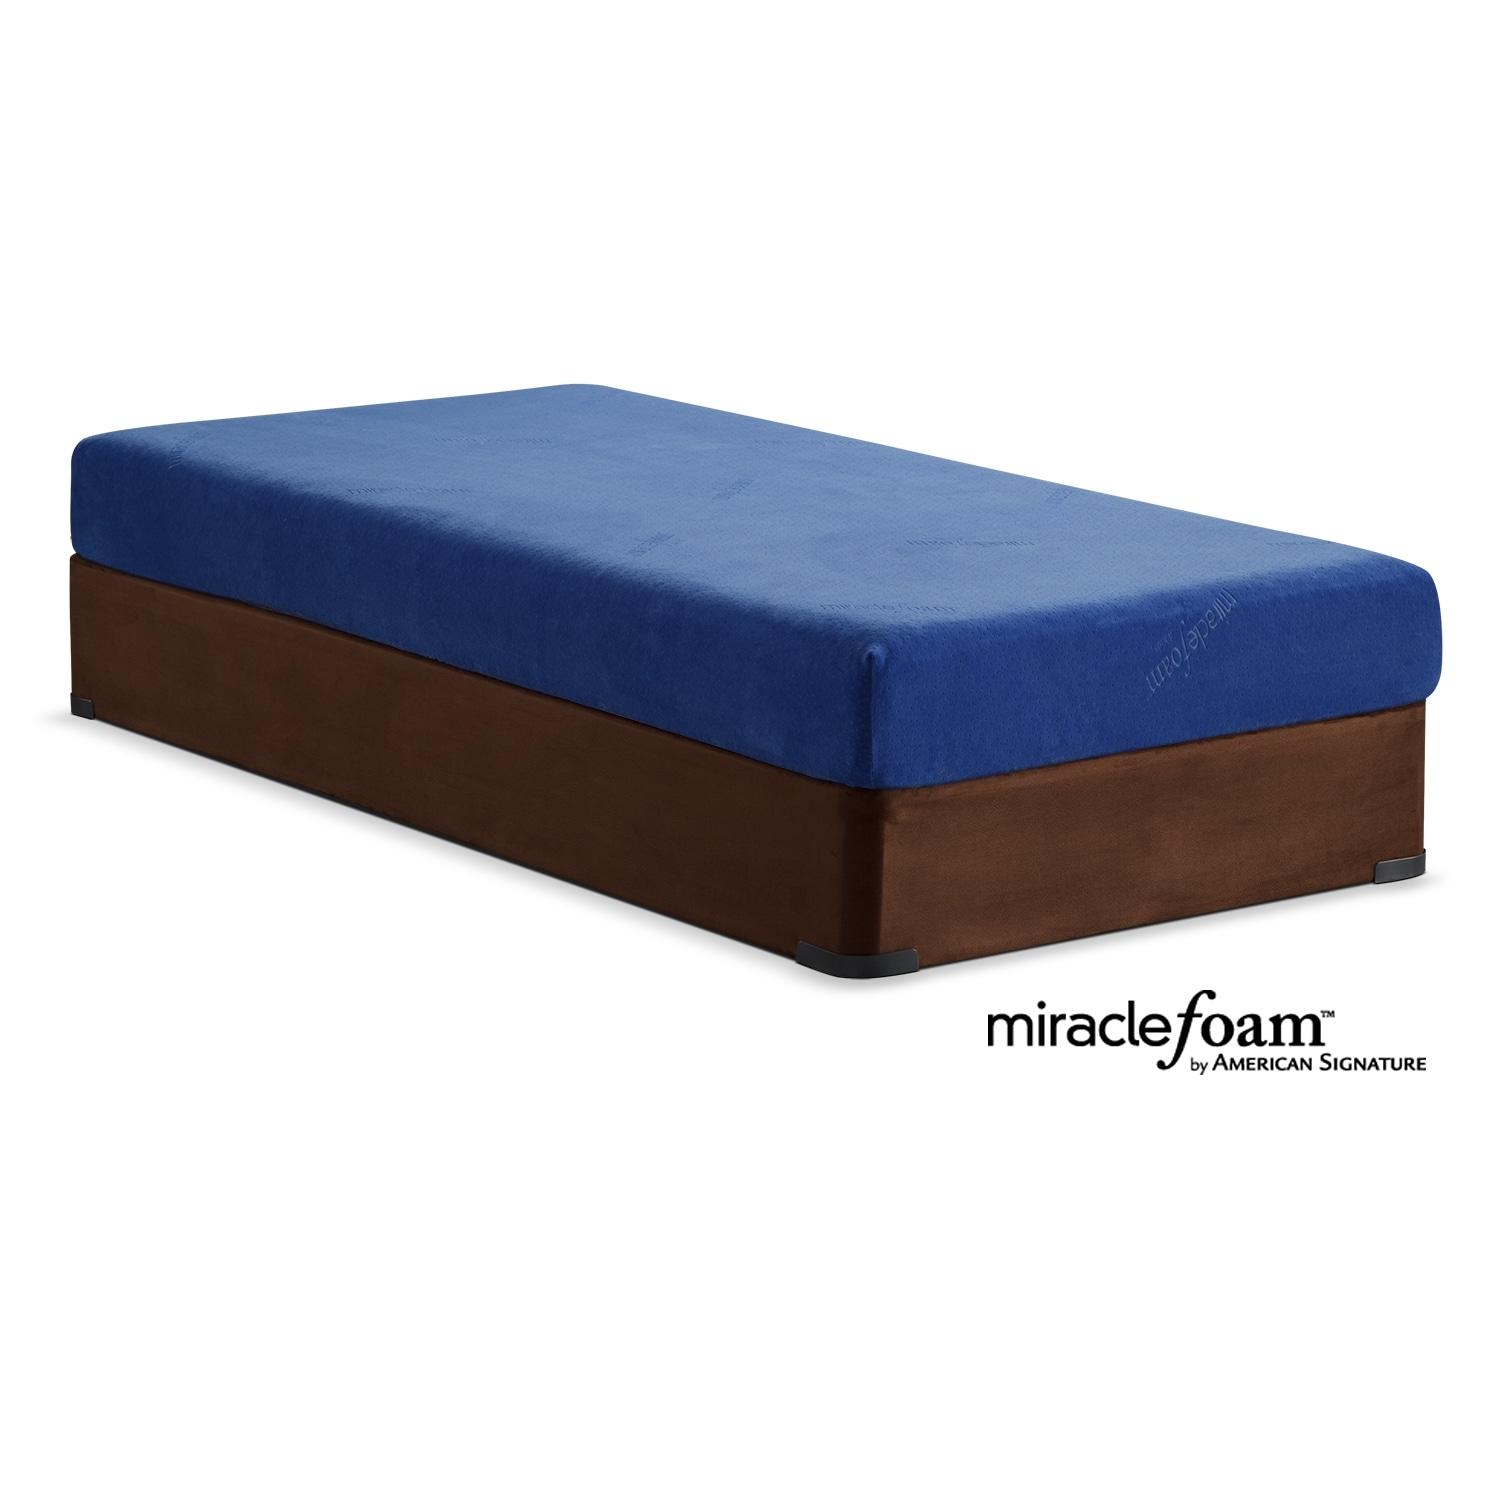 Mattresses and Bedding - Renew Blue Full Mattress and Foundation Set